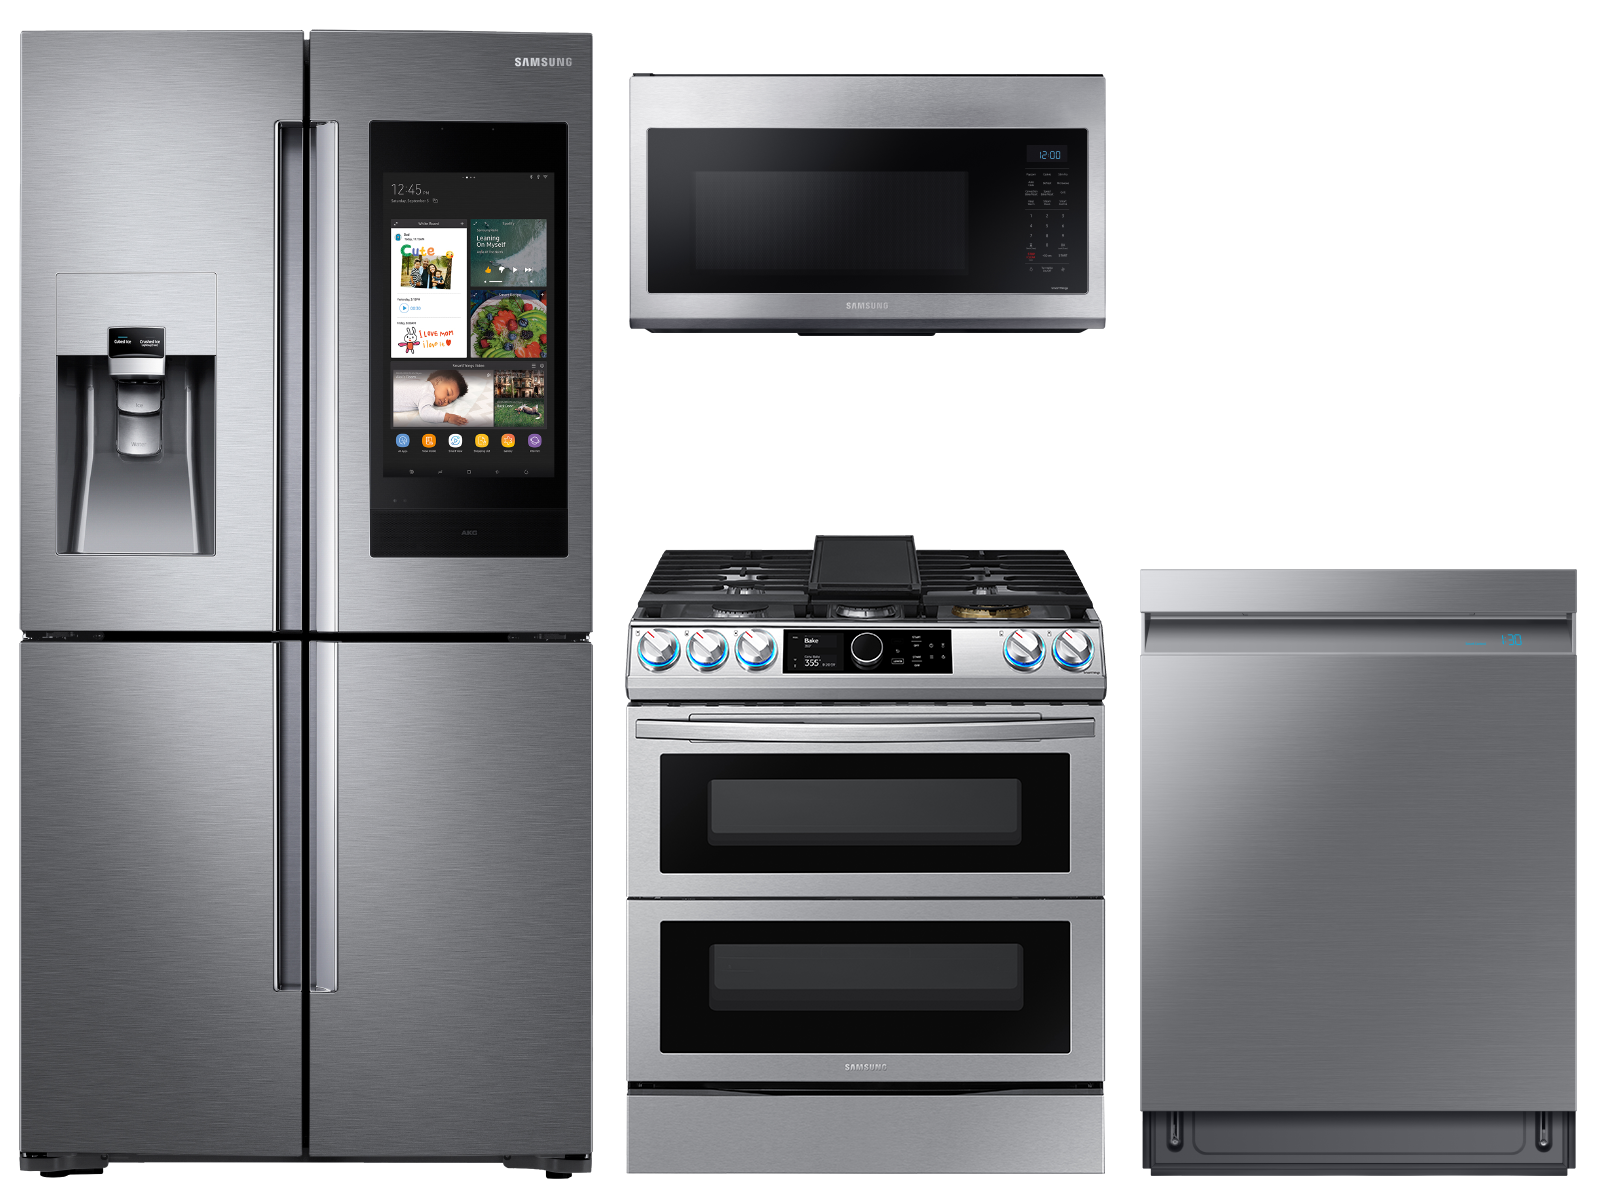 Family Hub™ 4-Door Flex™ Refrigerator + Flex Duo™ Slide-in Gas Range with Smart Dial & Air Fry + Linear Wash Dishwasher + Microwave in Stainless Steel